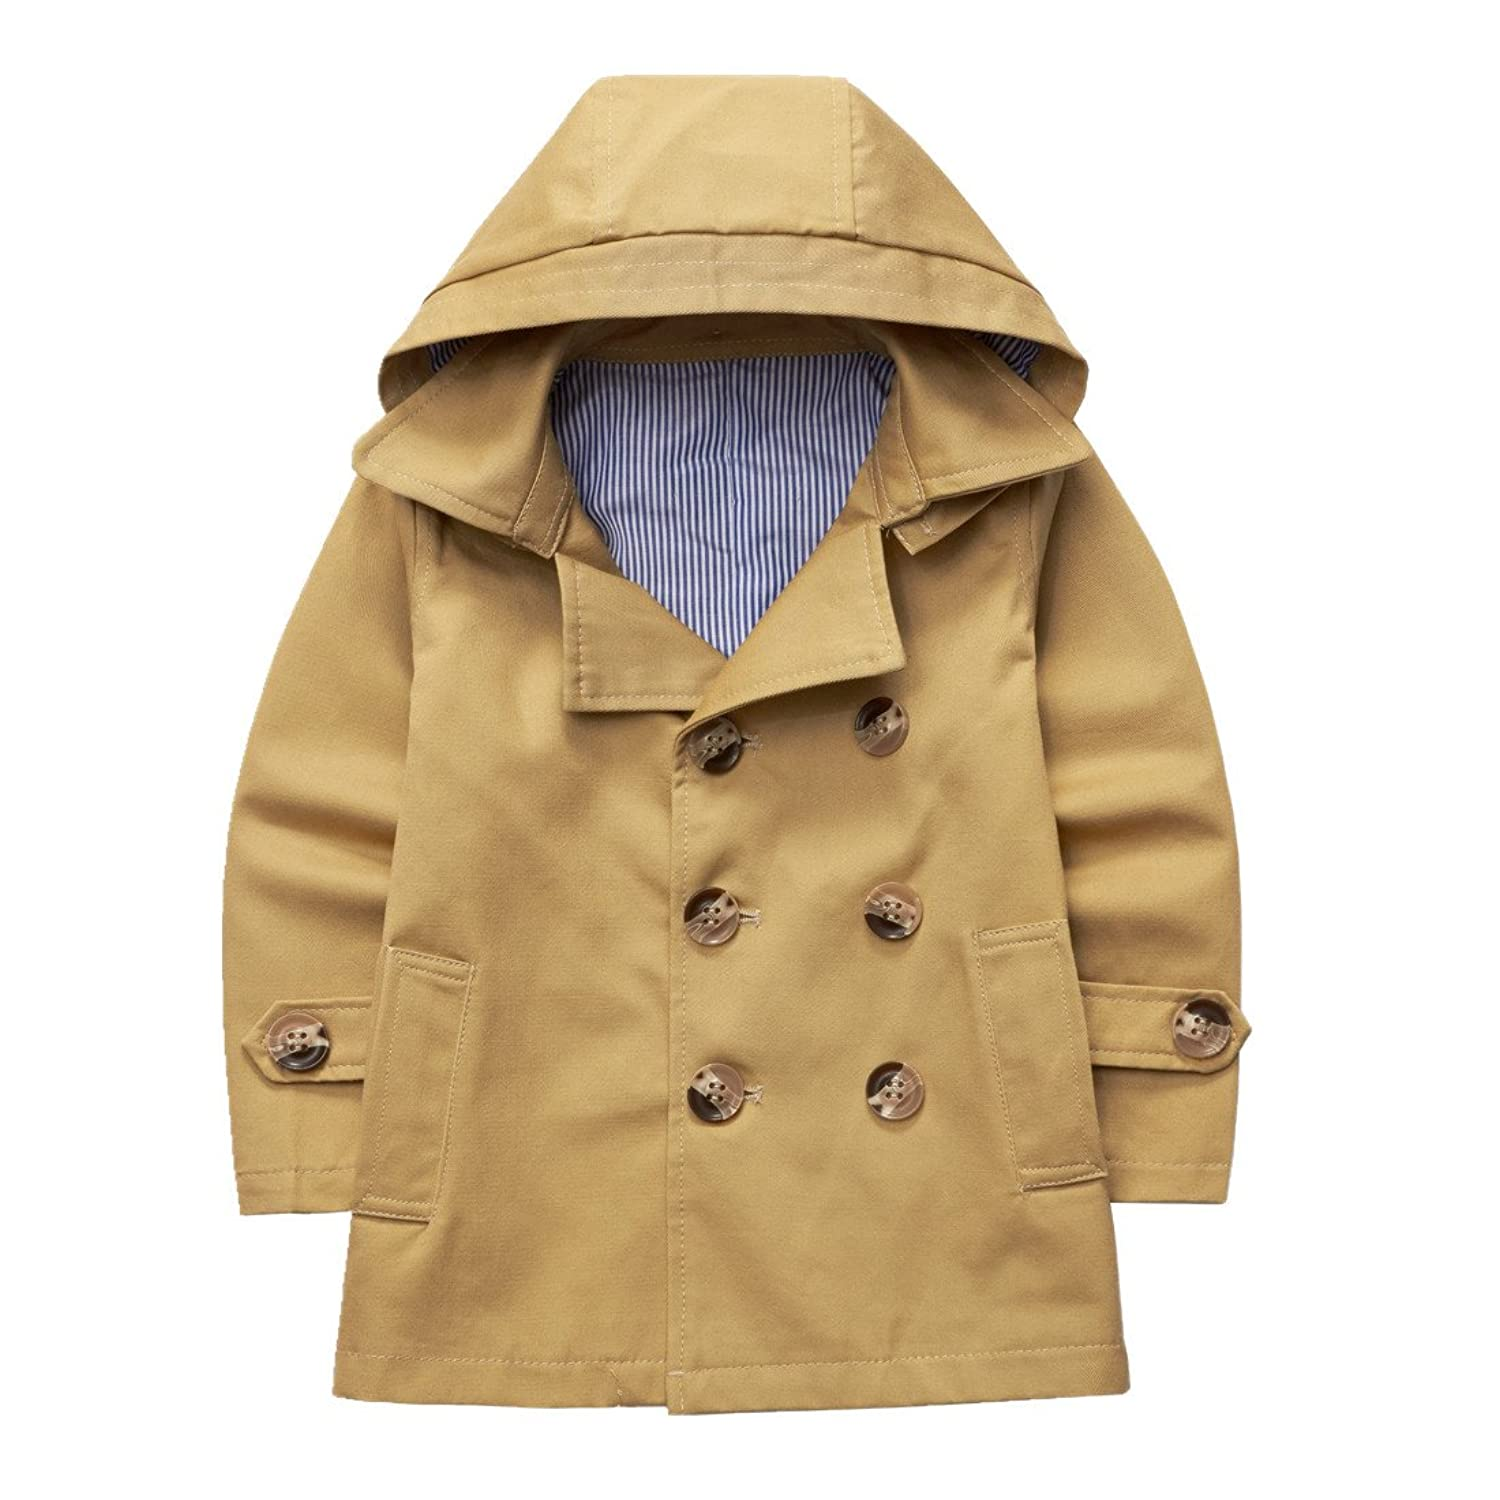 Sooxiwood OUTERWEAR ボーイズ